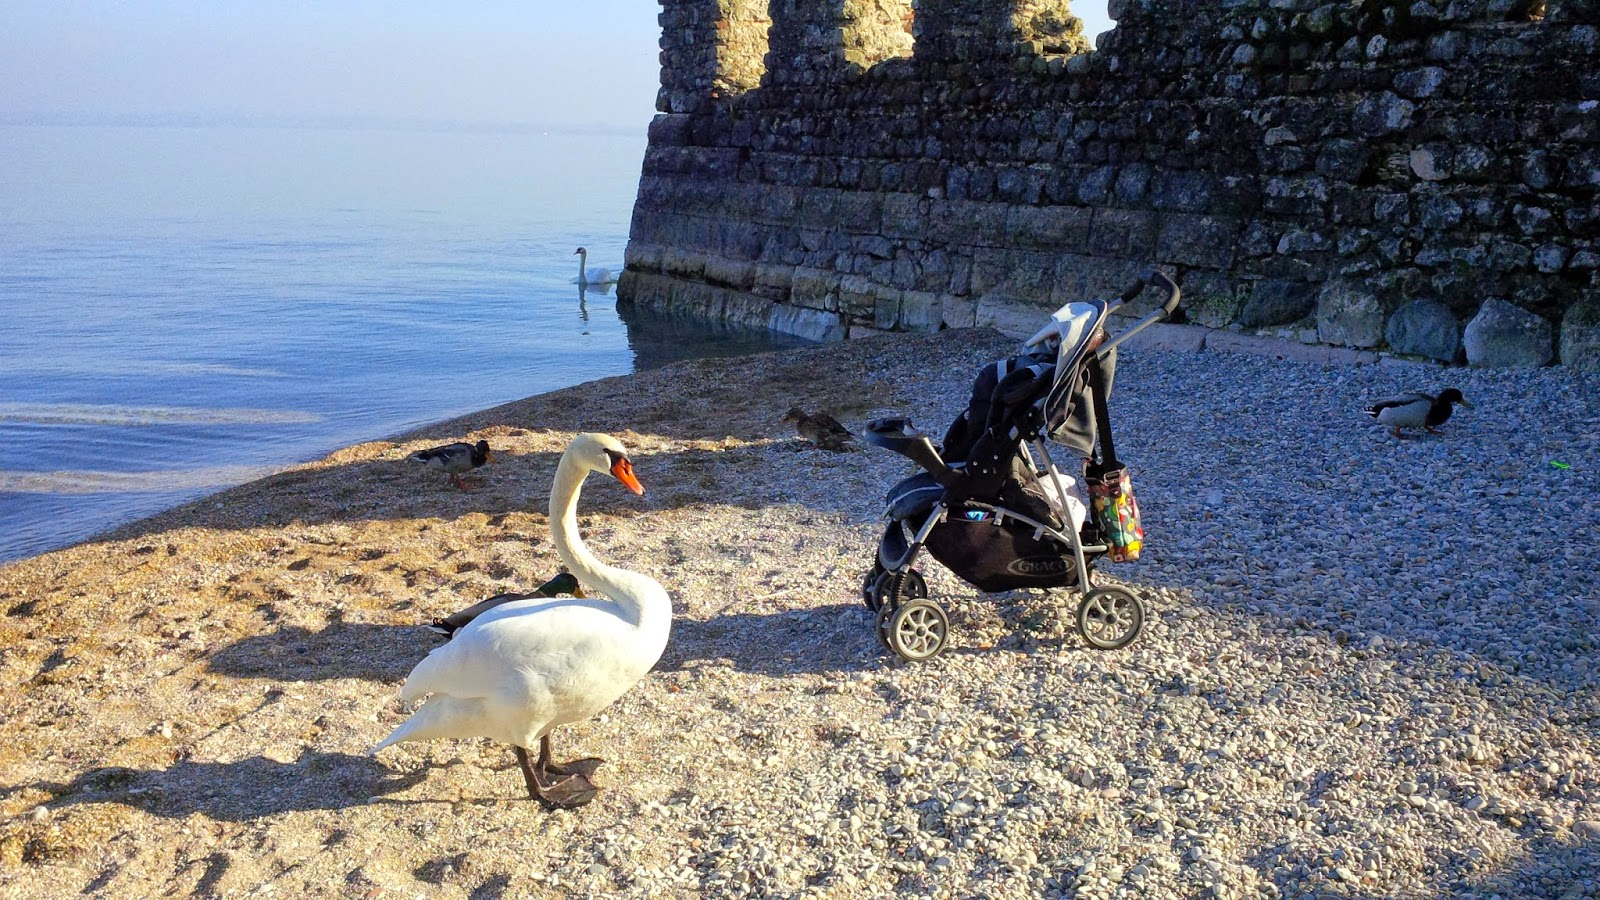 A white swan finds our Graco buggy irresistible